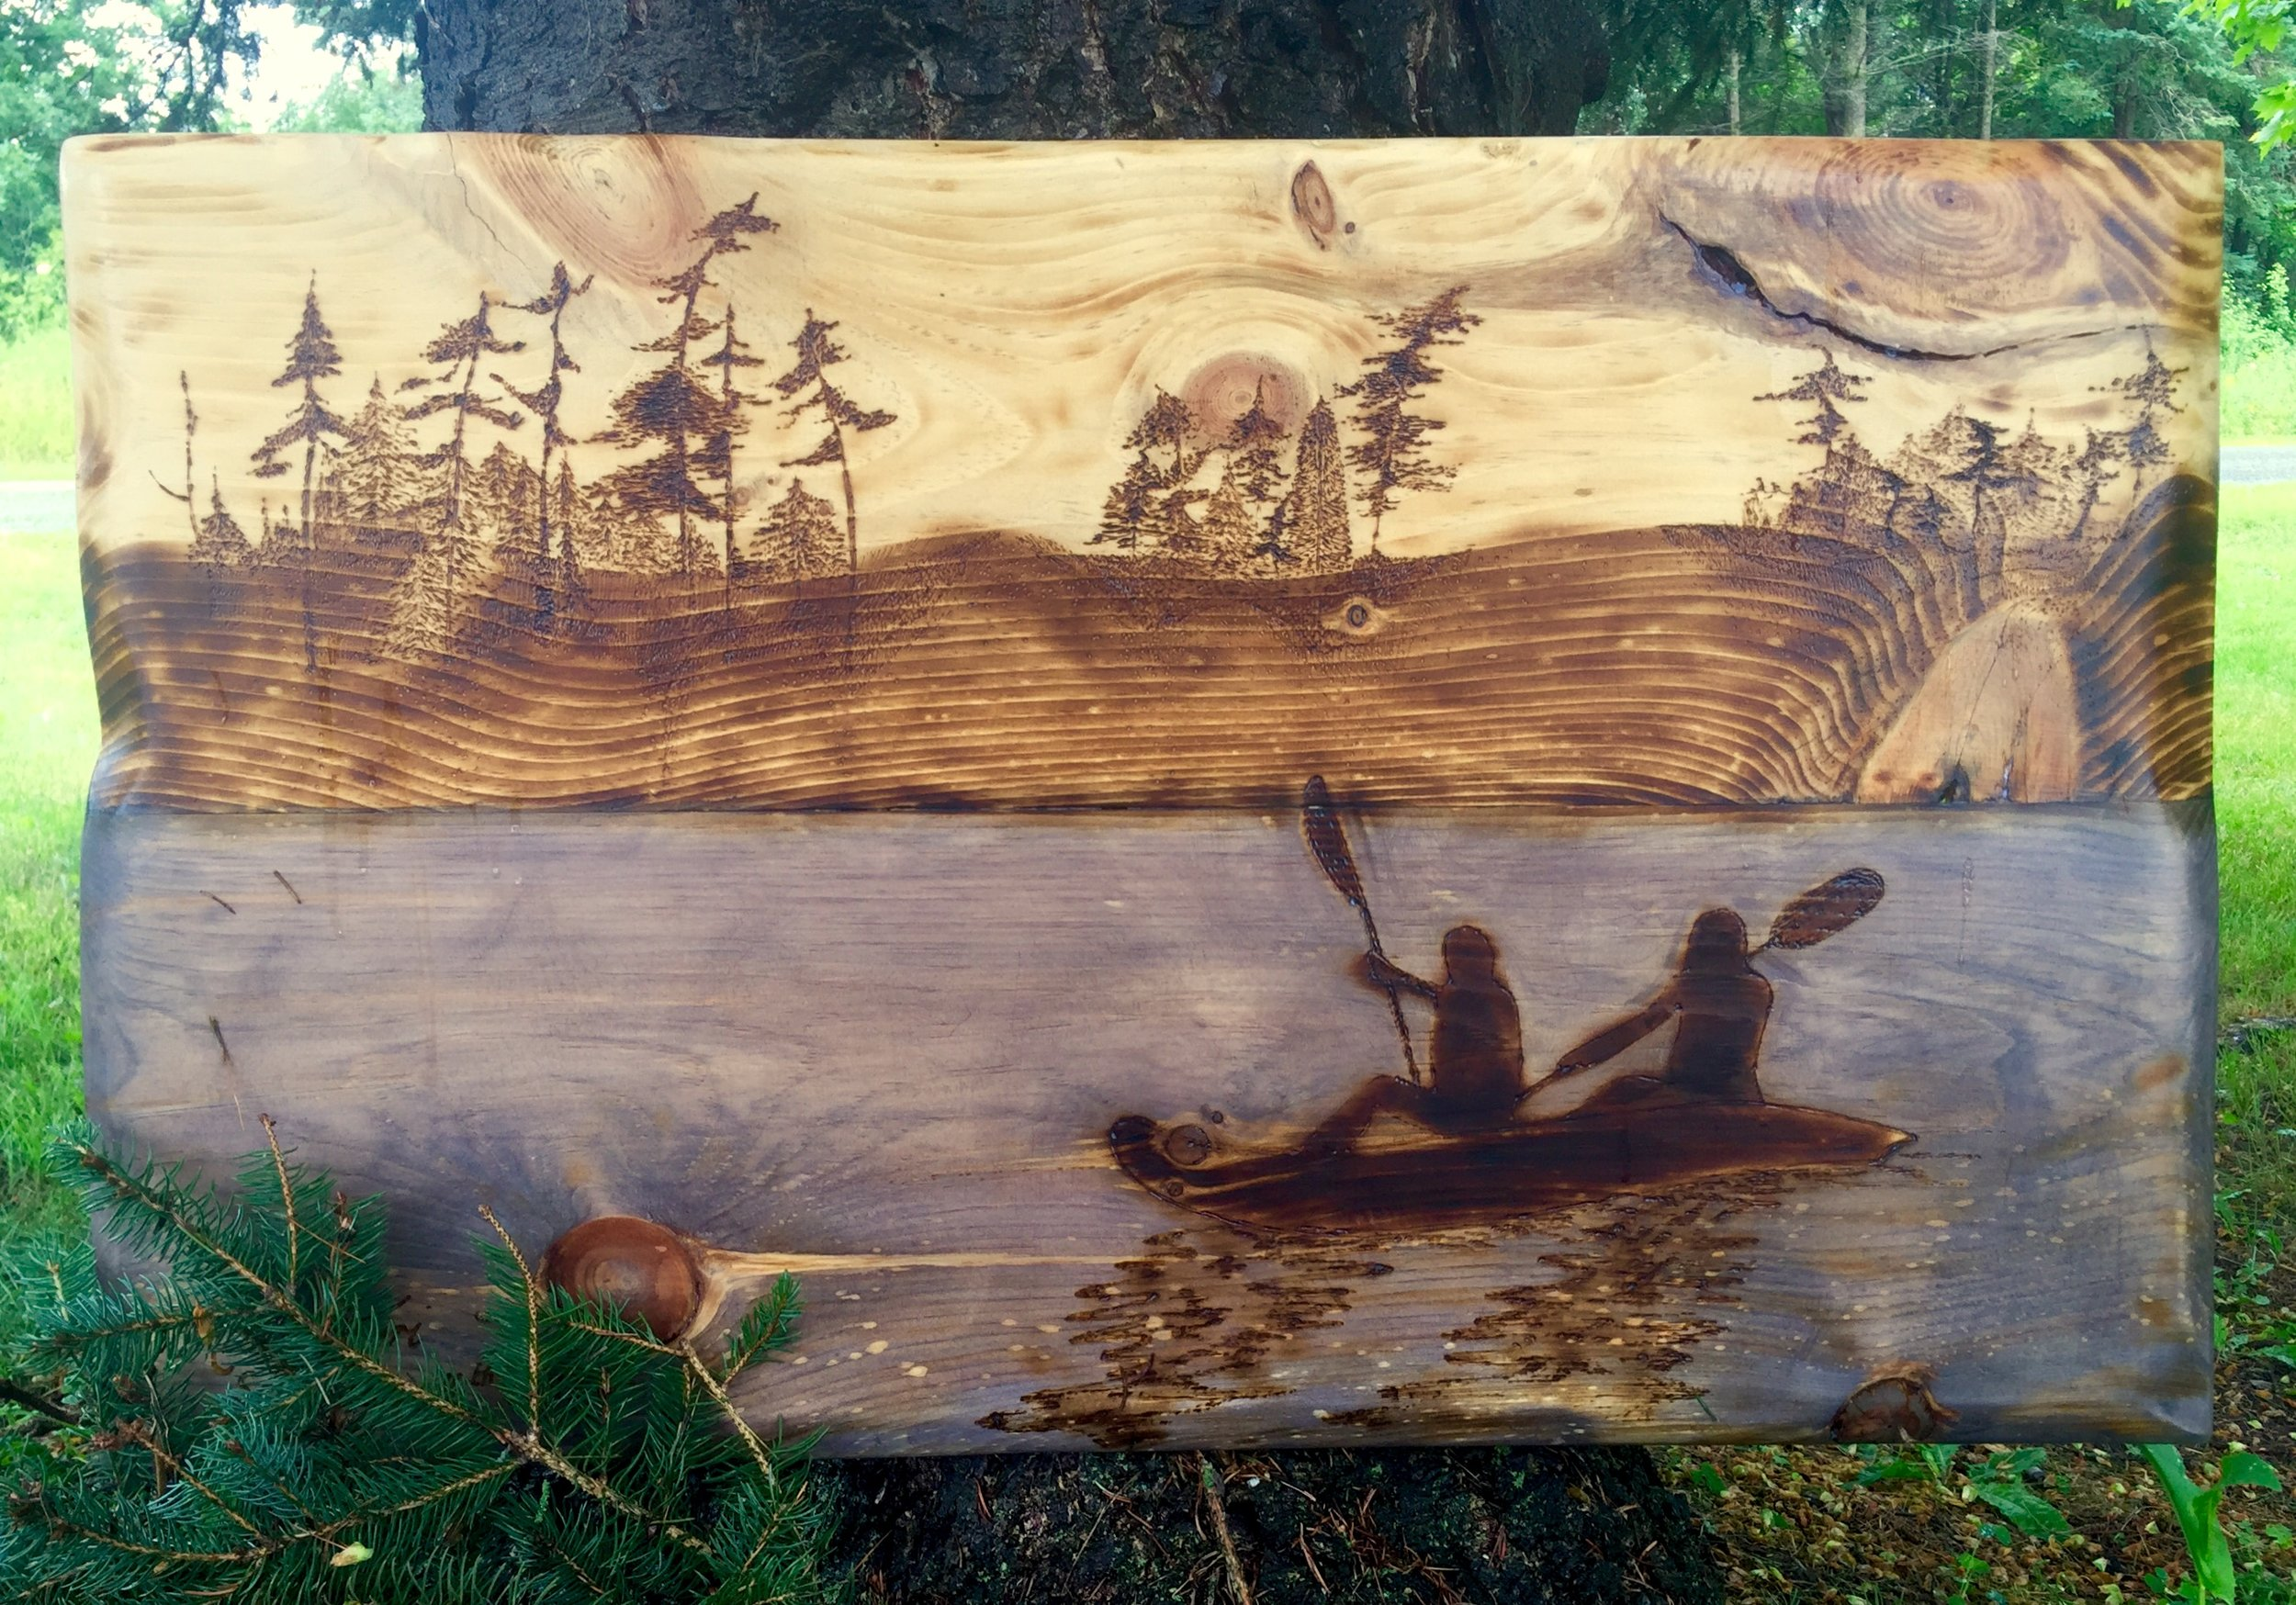 woodburned canoe scene.jpg